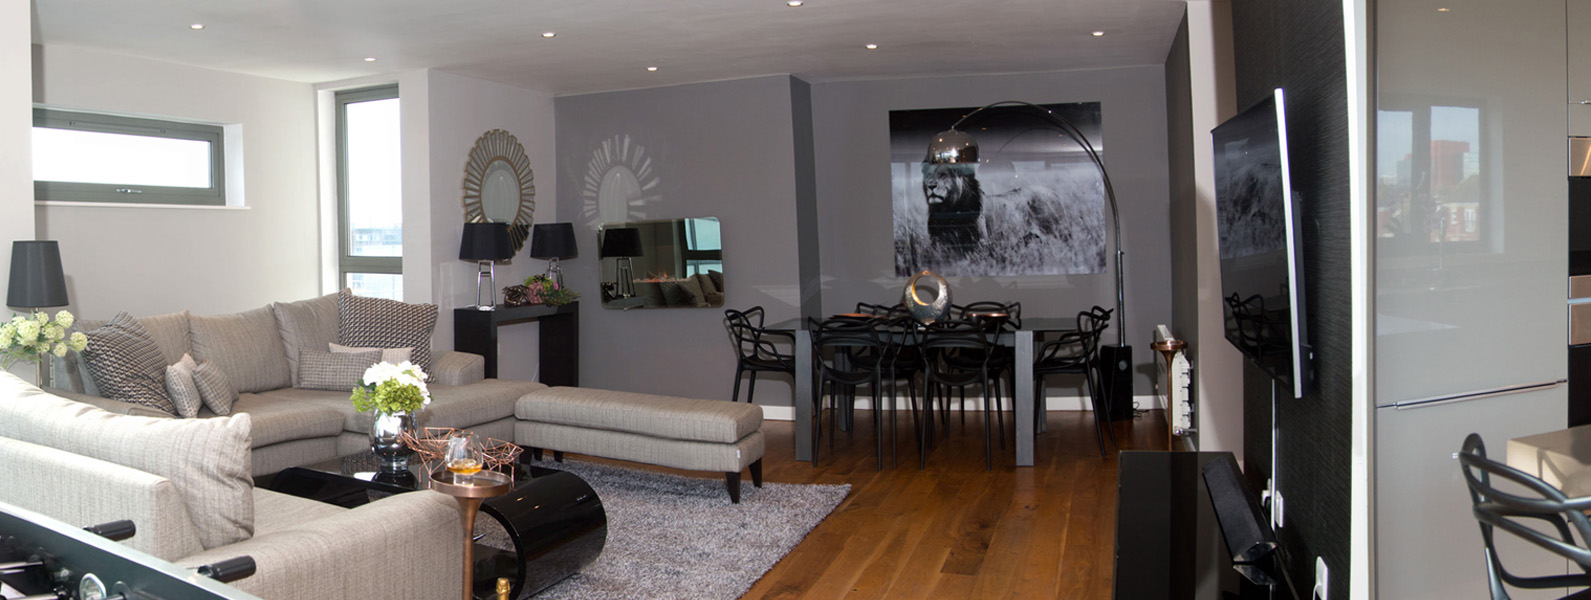 Living room interior design and styling details by Moji Salehi at Moji Interiors in Hove.